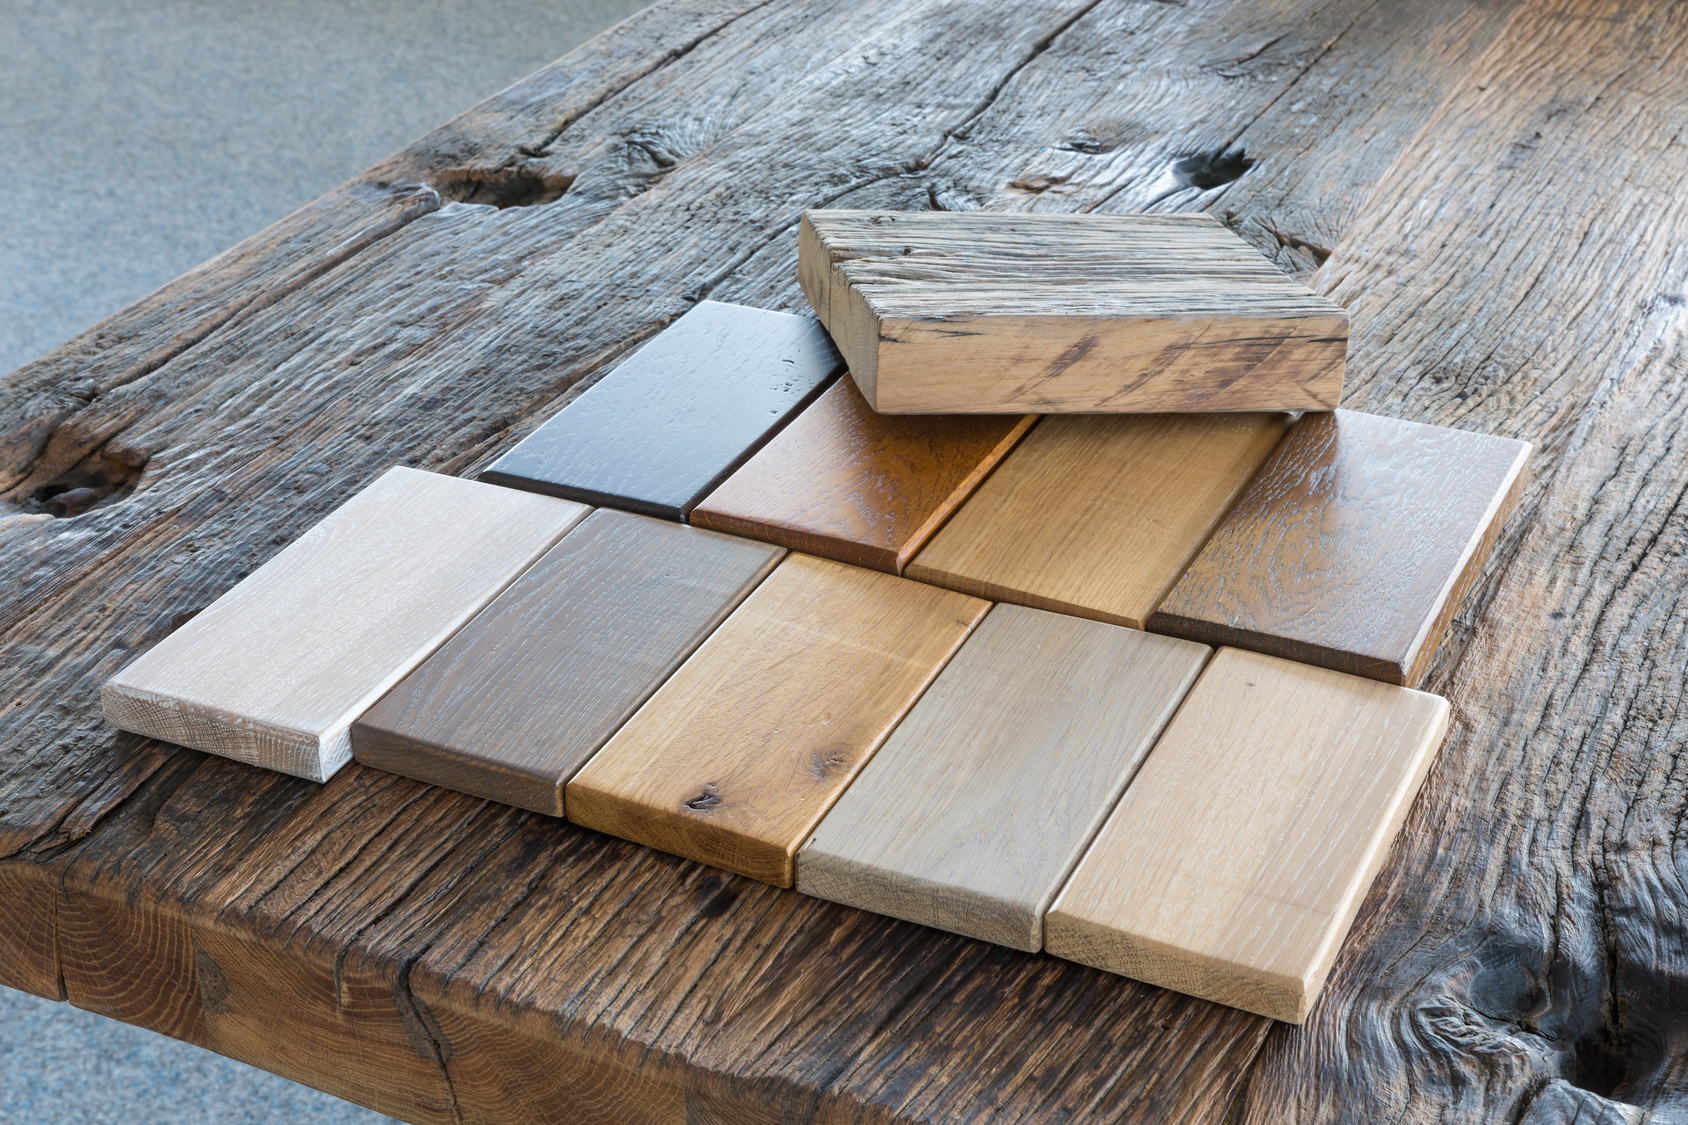 Different types of wood have different properties that affect the reading results of moisture meters.